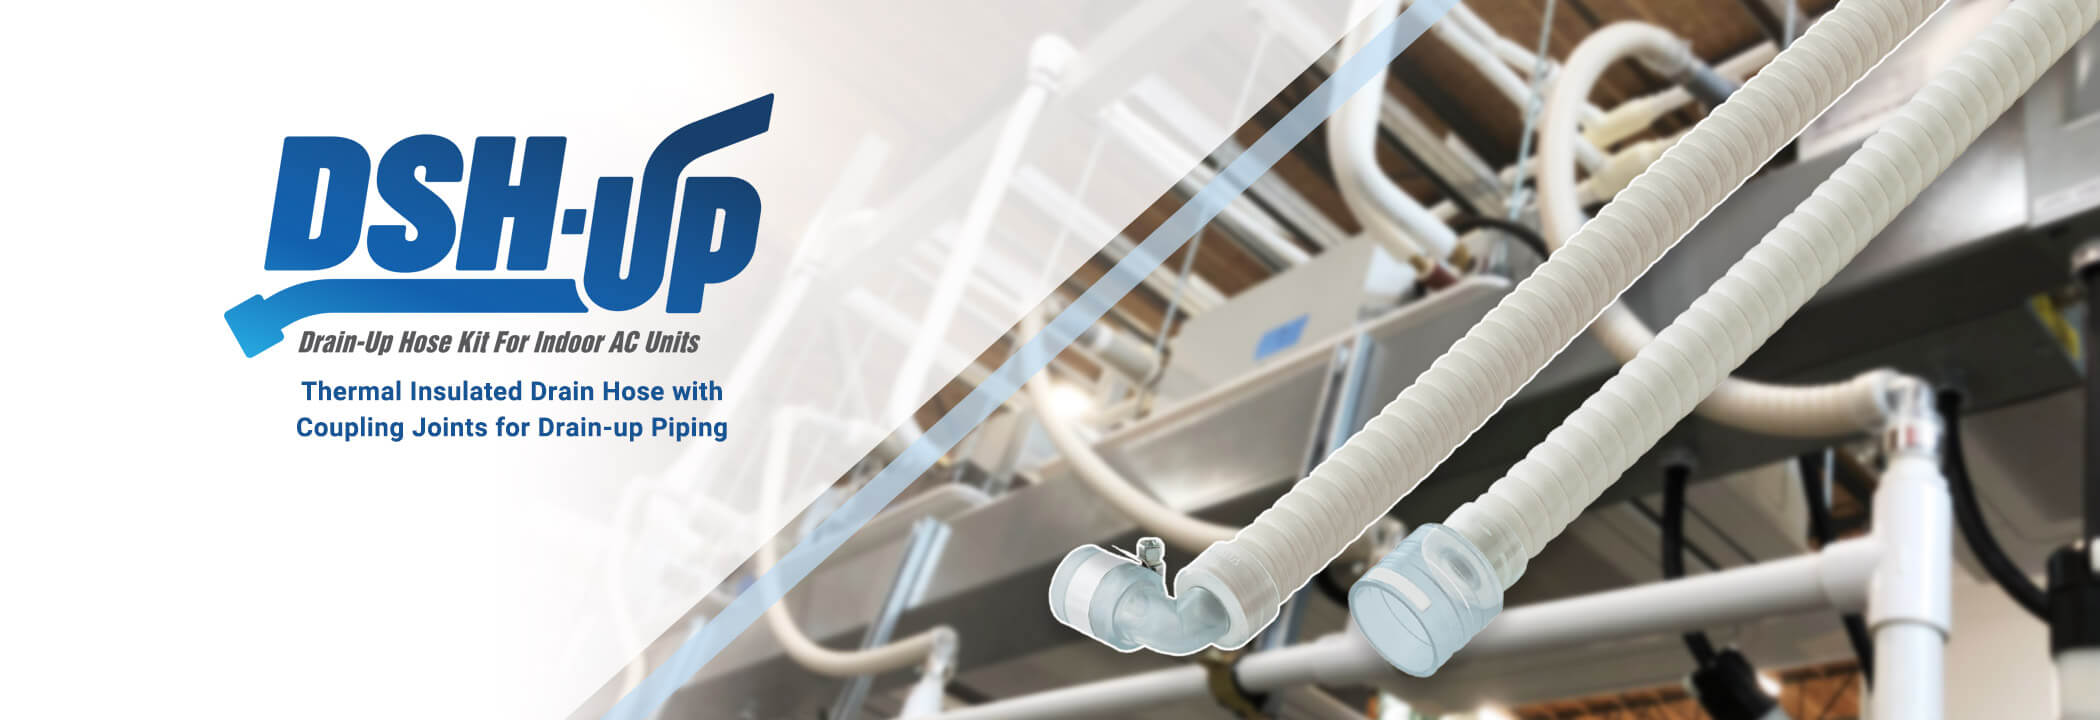 DSH-UP | Drain-up Hose Kit for Indoor AC Units | Thermal Insulated Drain Hose with Coupling Joints for Drain-up Piping